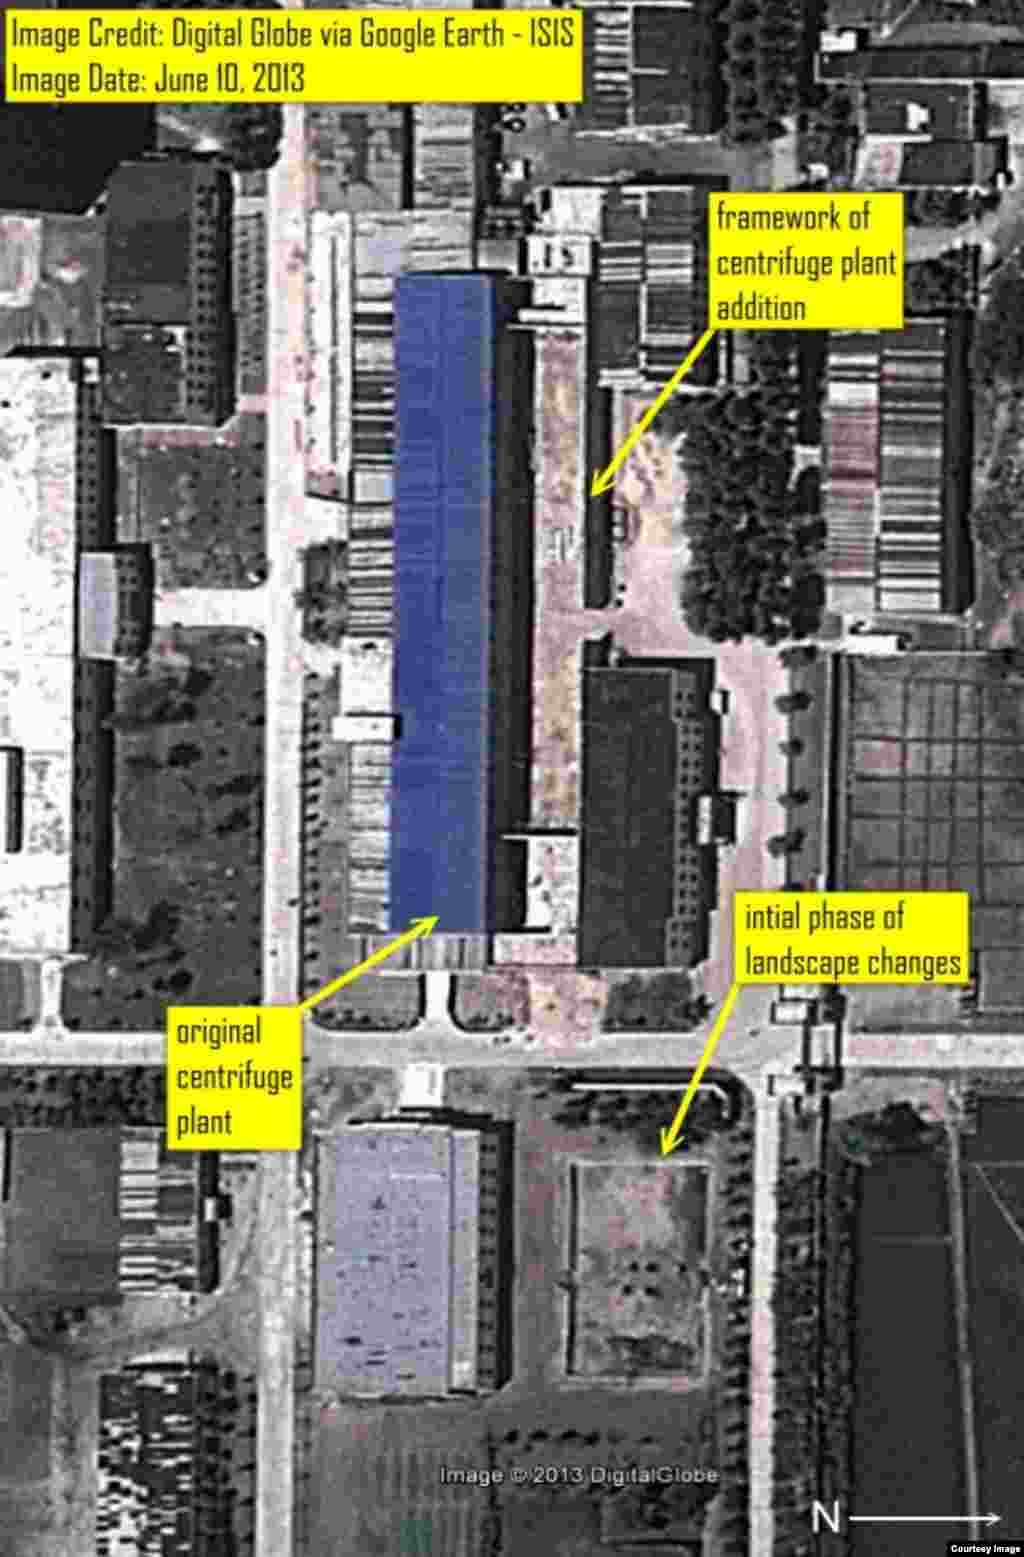 Digital Globe imagery from June 10, 2013 available on Google Earth showing the frame of the extension added to the centrifuge plant building.